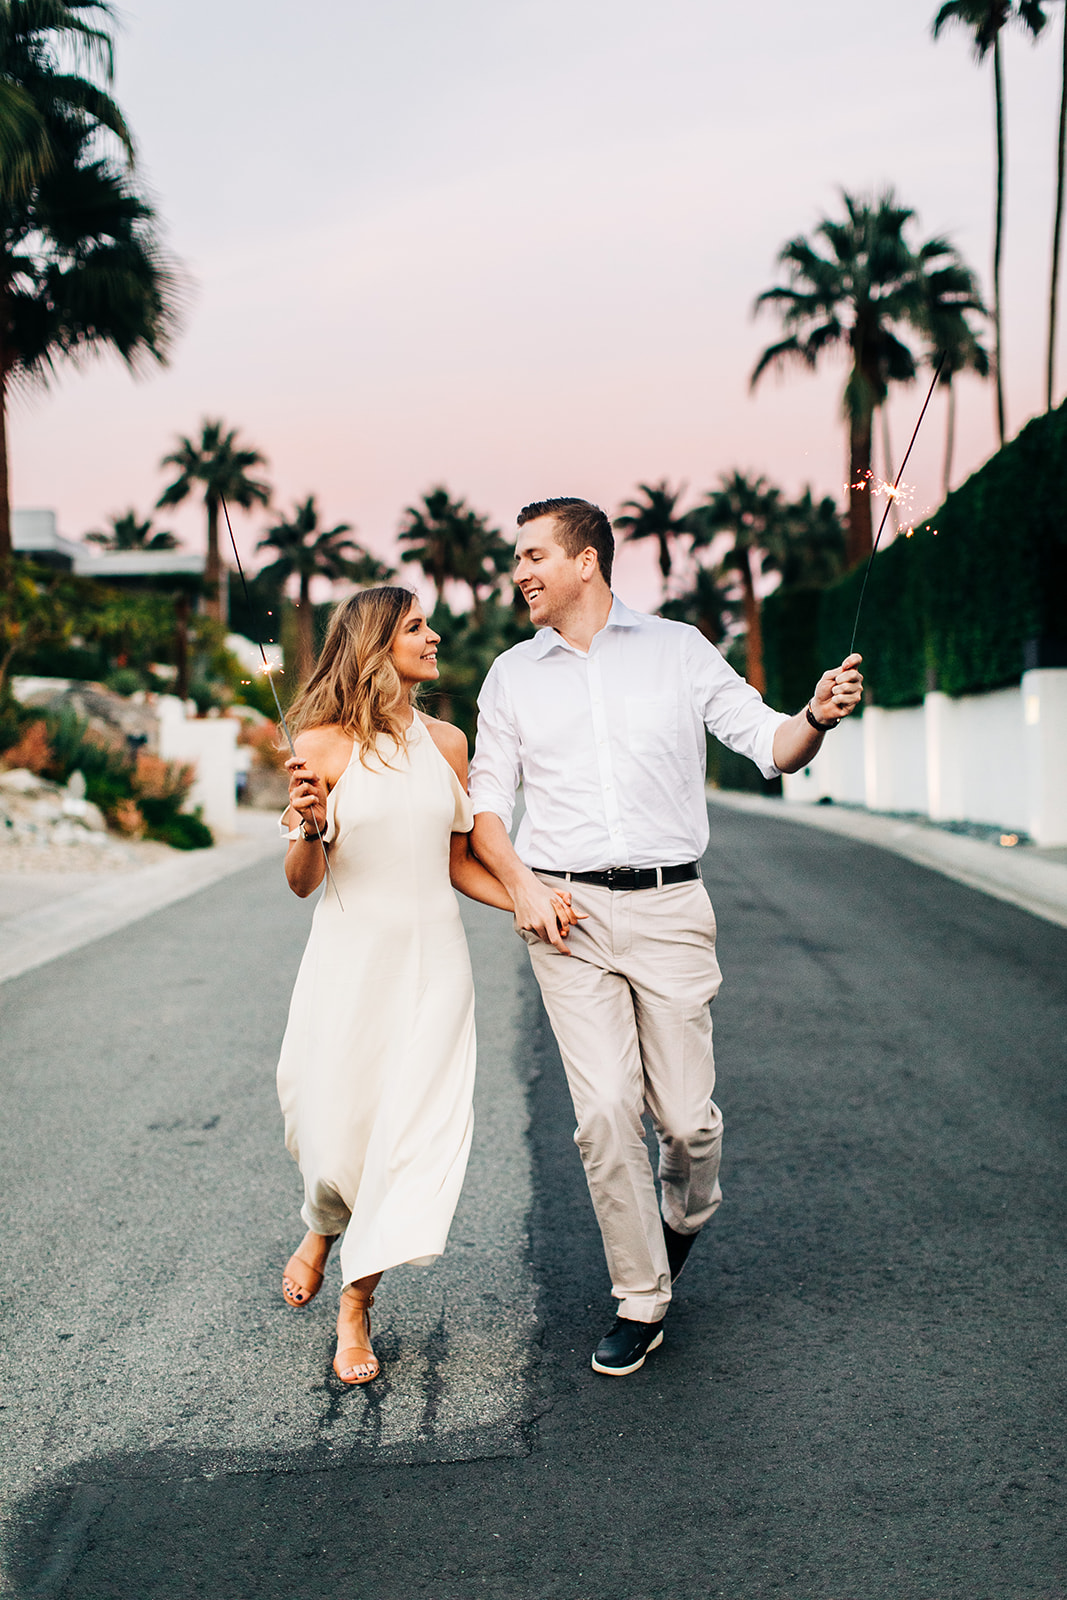 Paulina-Drew_Palm-Springs-Engagement-Photos_Clarisse-Rae_Southern-California-Wedding-Photographer-60